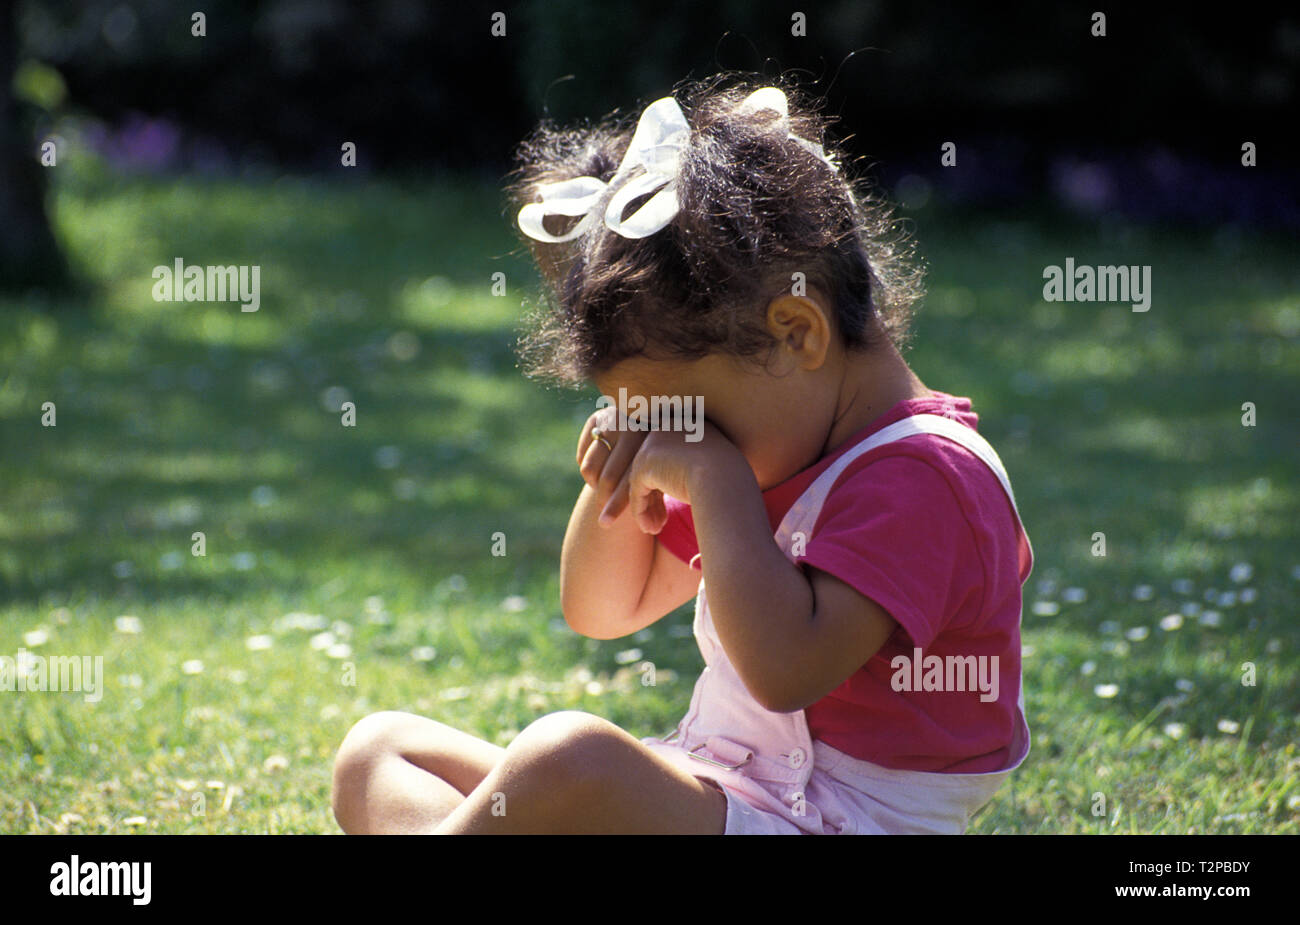 little girl sitting in garden rubbing her eyes - Stock Image